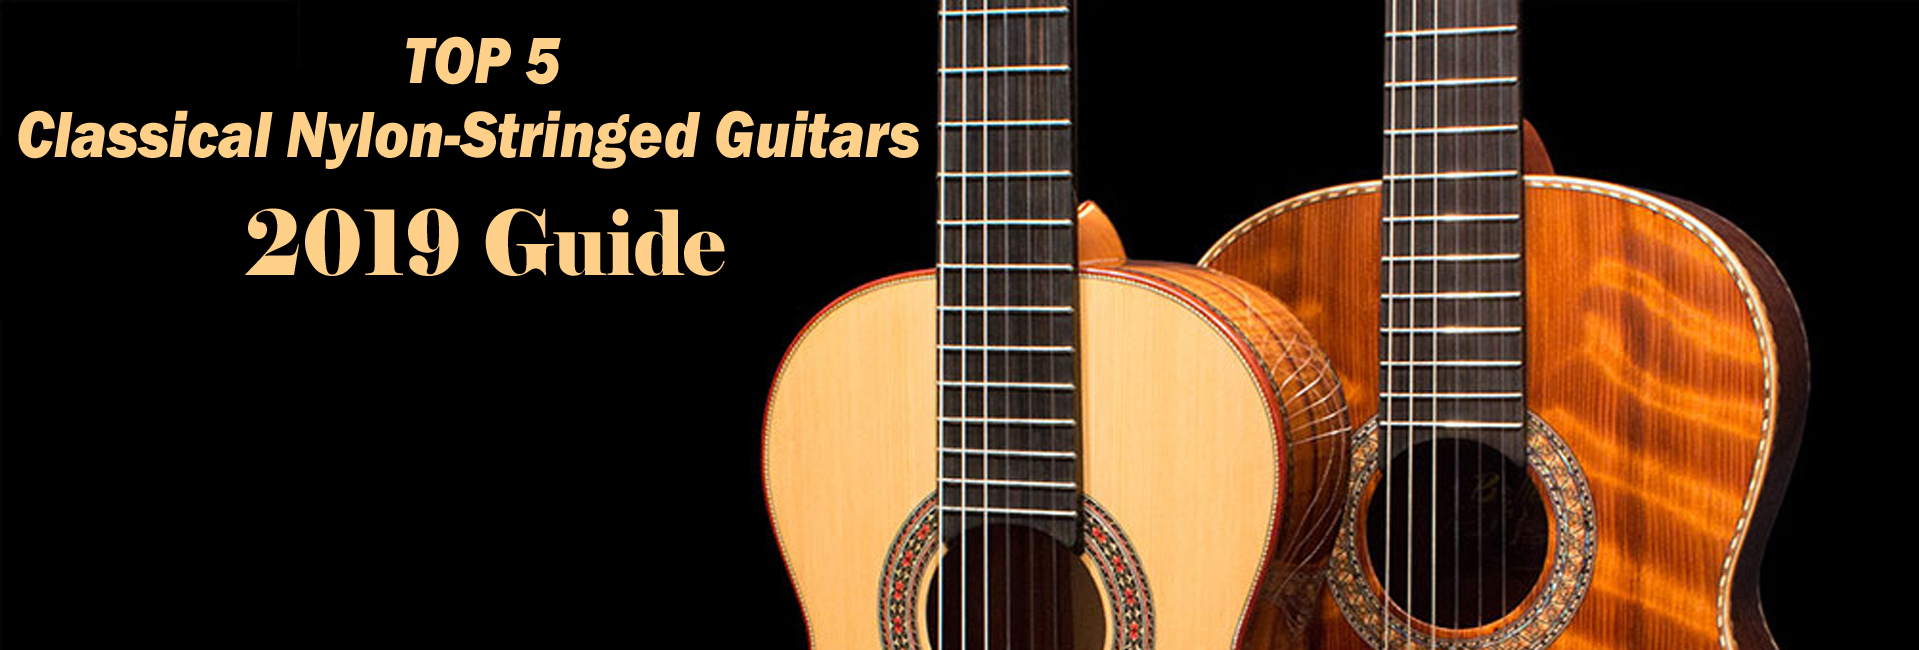 Top 5 Nylon-String & Classical Guitars for Beginners - 2020 Guide